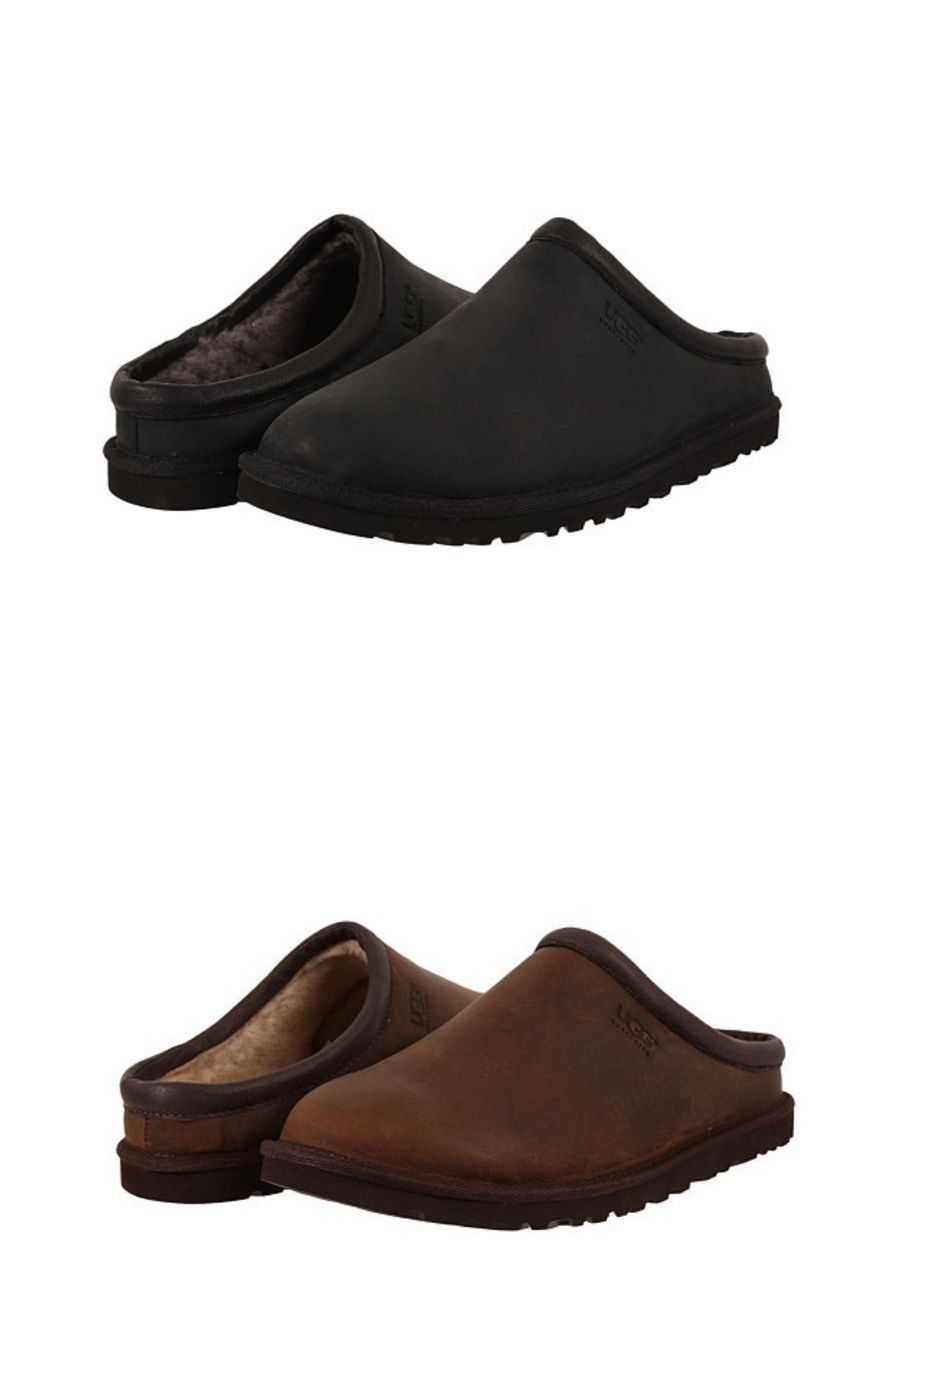 3795864571f Slippers 11505: Ugg Australia Men S Classic Clog Slip On 1011413 ...